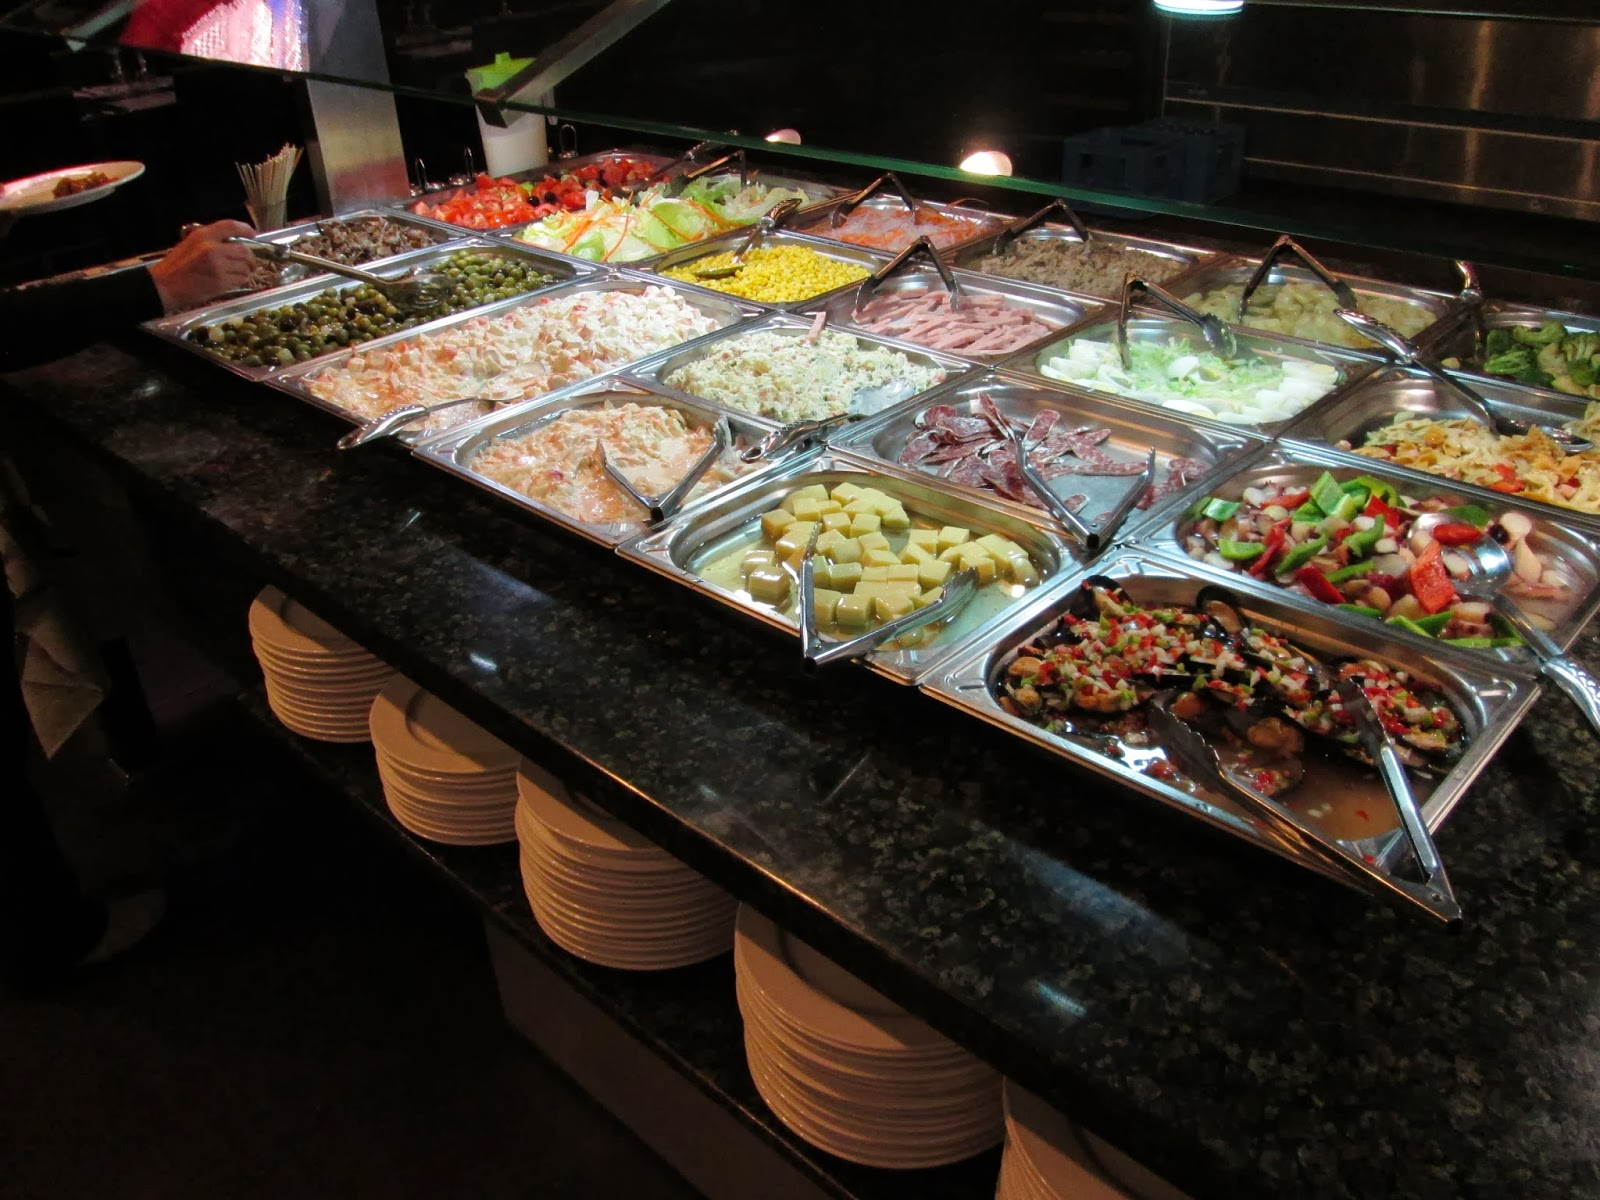 Buffet Libre Chino Madrid Buffet Chino Wok Kokoxily Gastrocritic